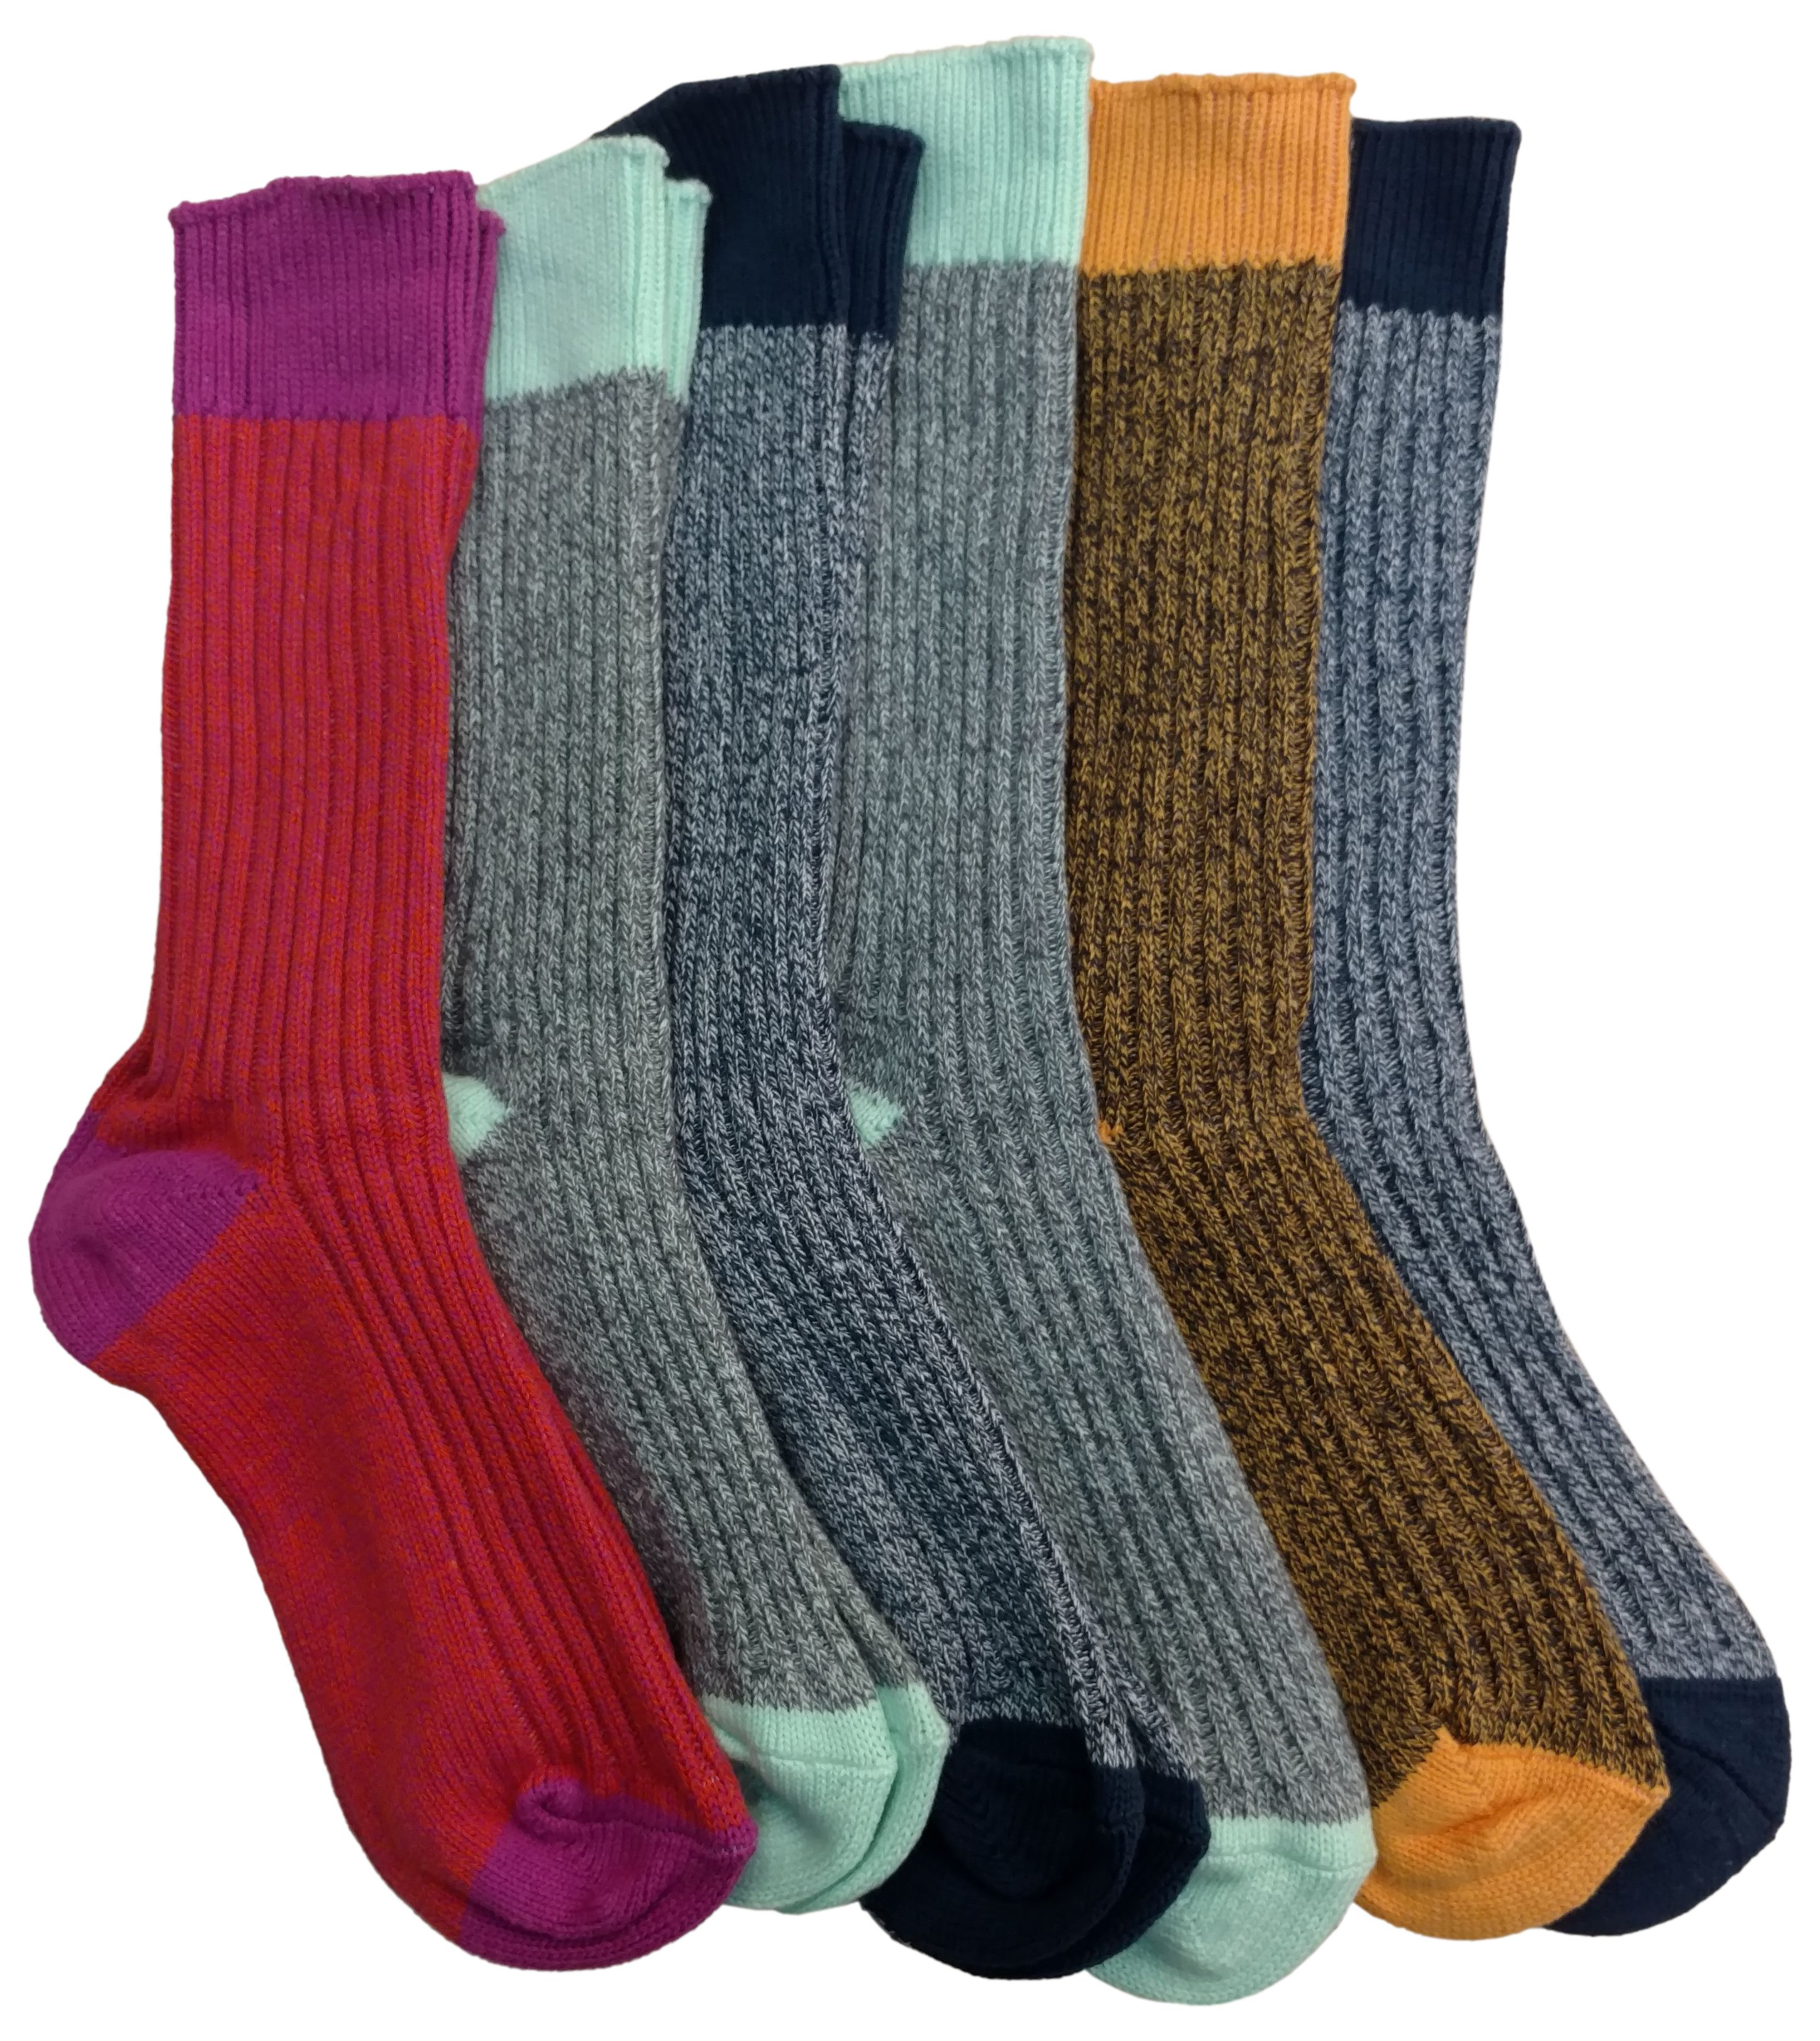 6 Pairs of Sockbin Colorful Thick Warm Winter Boot Socks